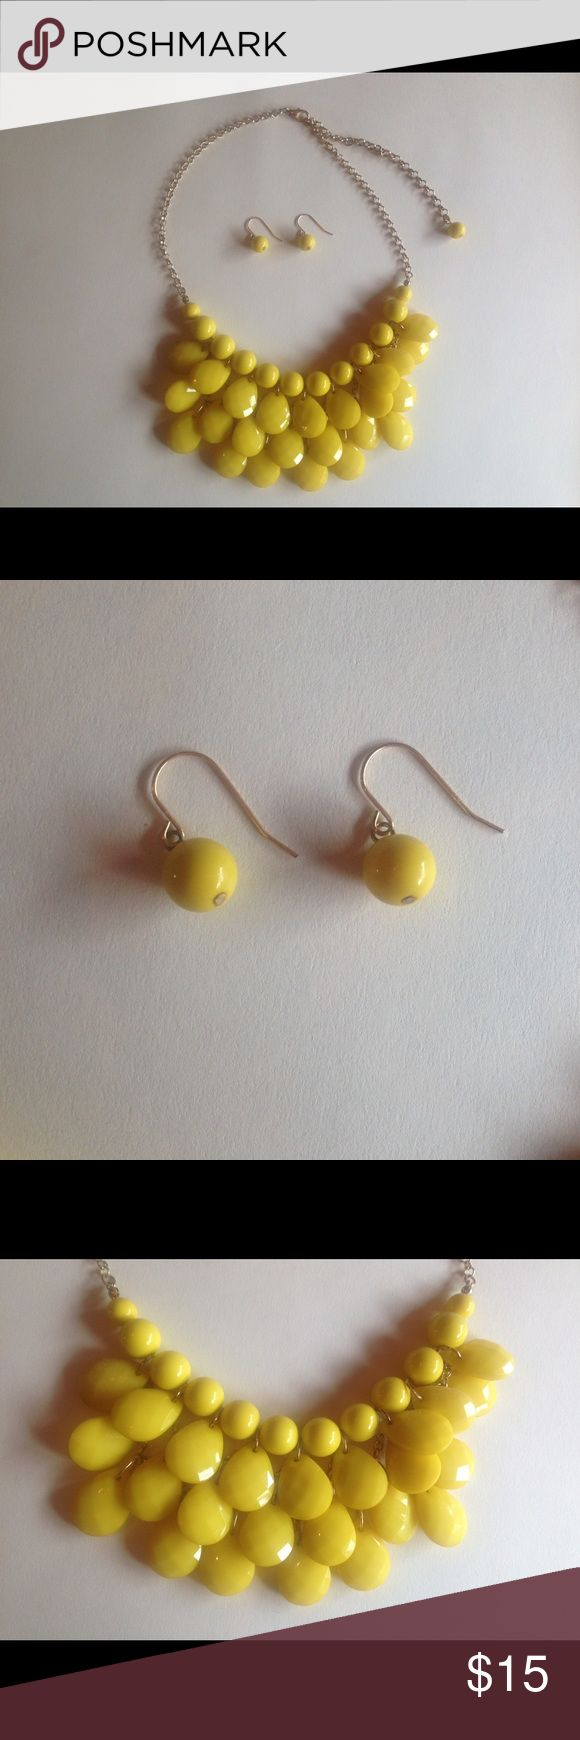 Yellow Teardrop Statement Necklace & Earrings NWOT beautiful teardrop necklace with matching earrings. This will go perfect with a dress or your favorite top. Open to offers. Jewelry Necklaces